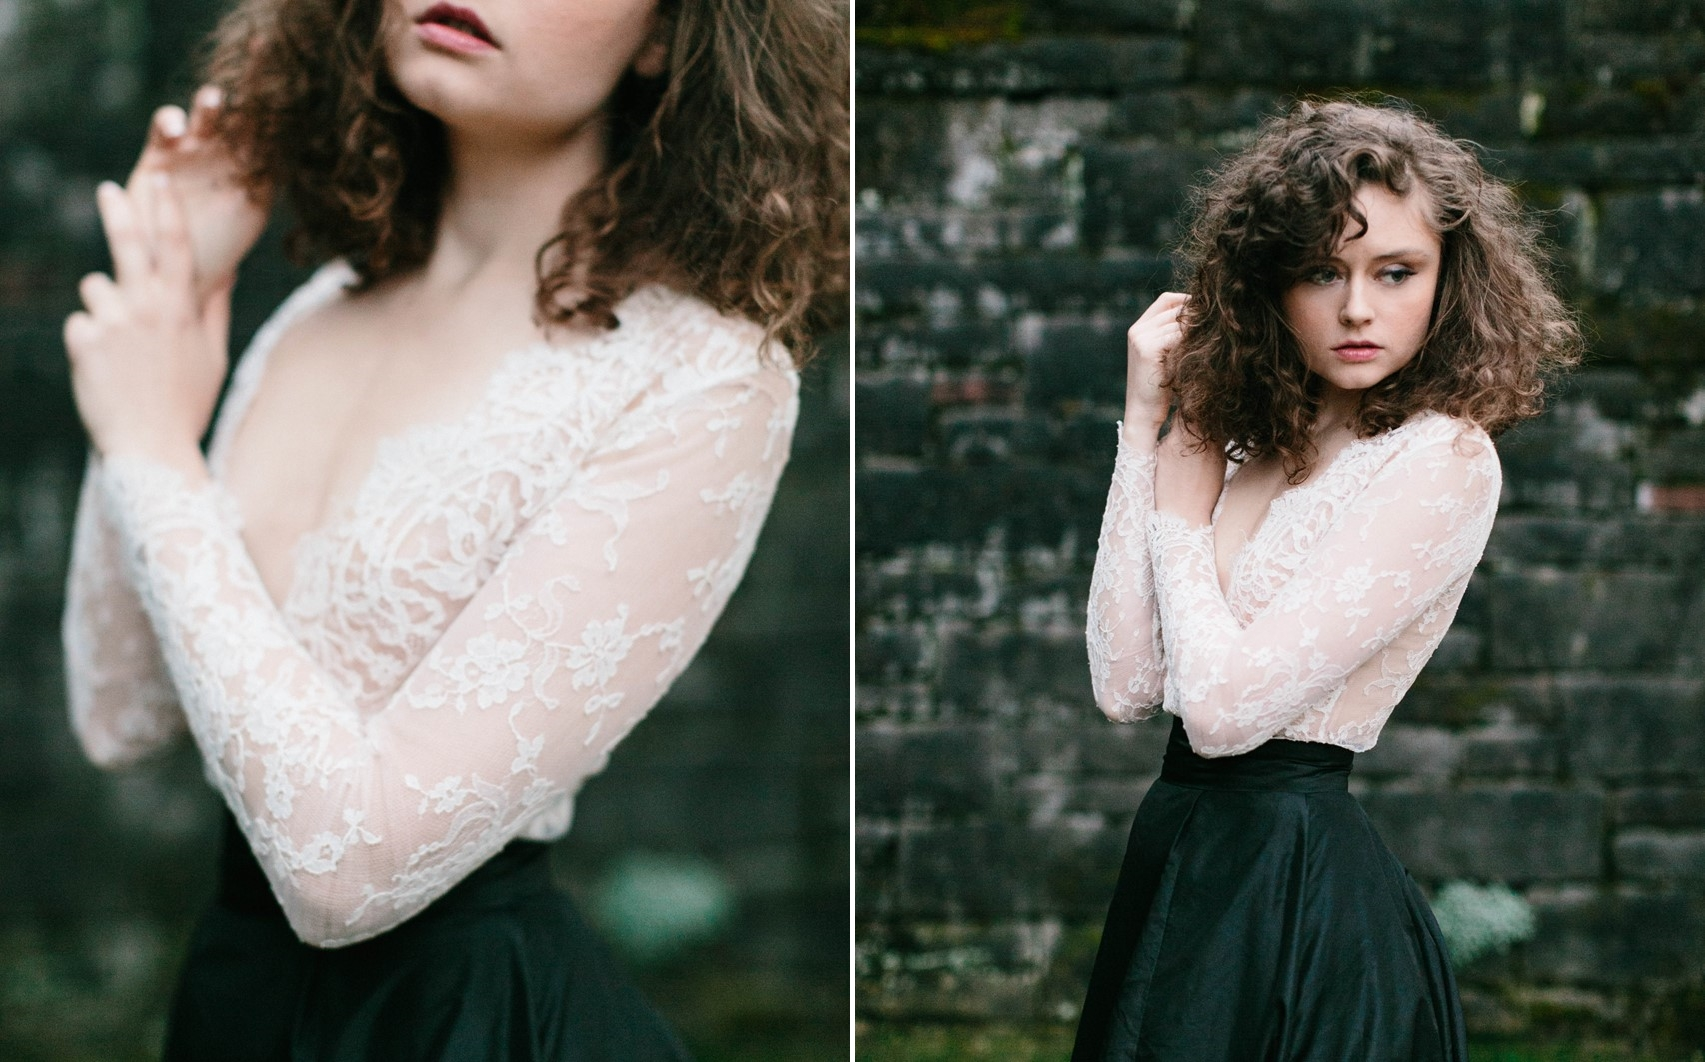 Long Sleeve Wedding Dress - A Romantic Gothic Bridal Inspiration Shoot